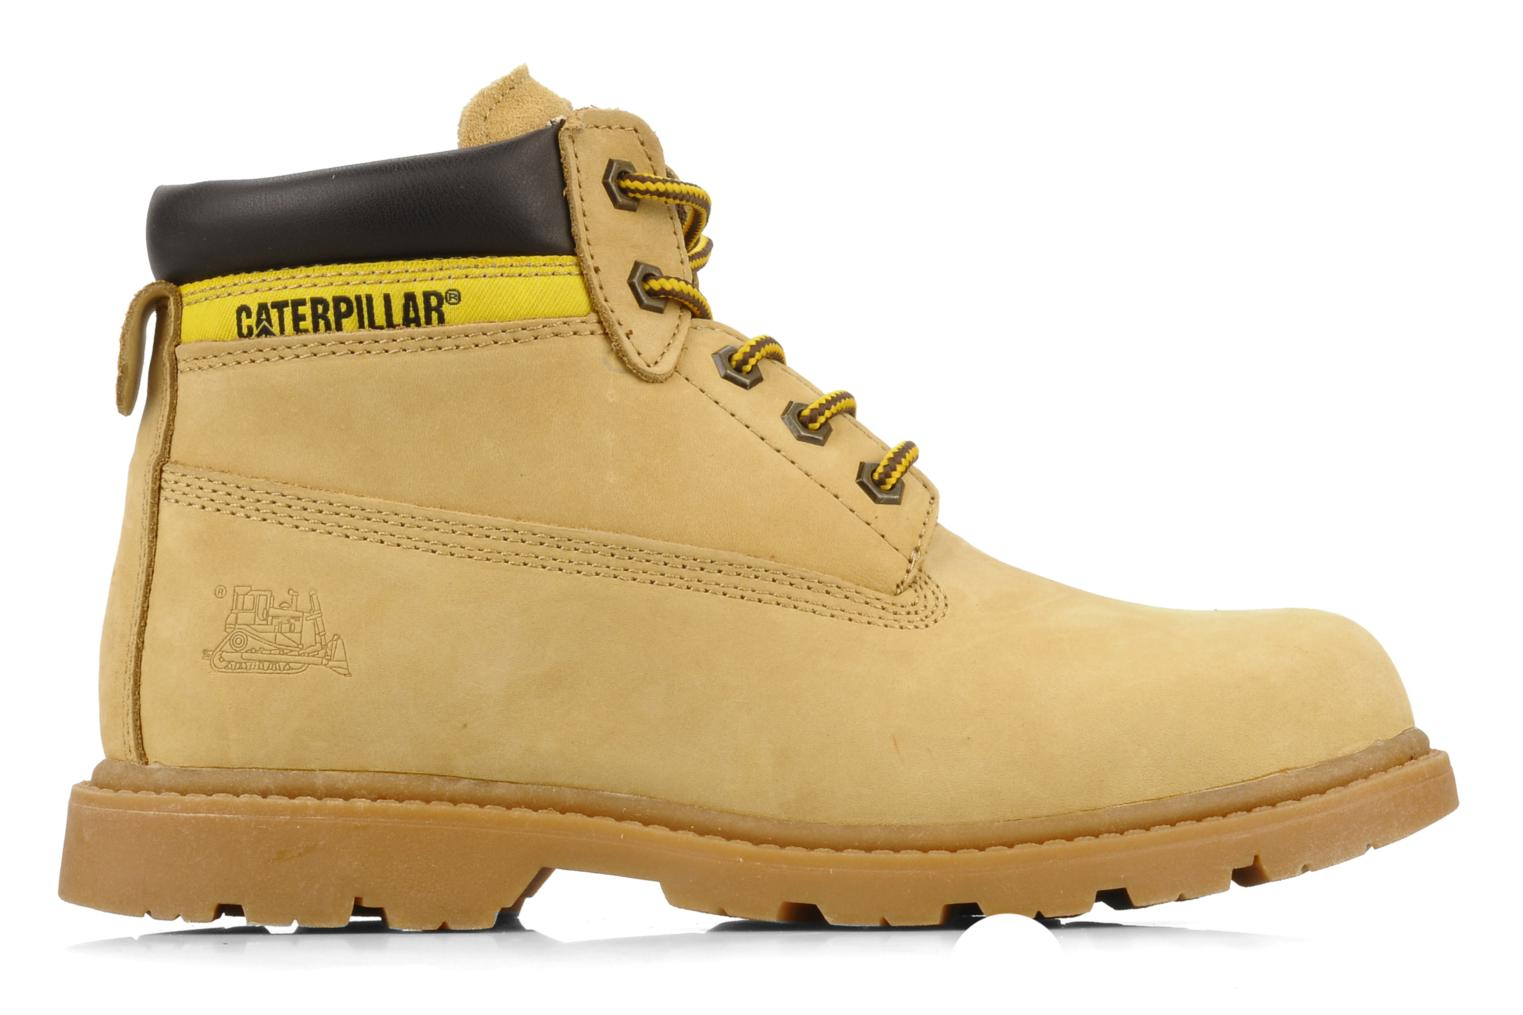 Bottines et boots Caterpillar Colorado Plus Beige vue derrière